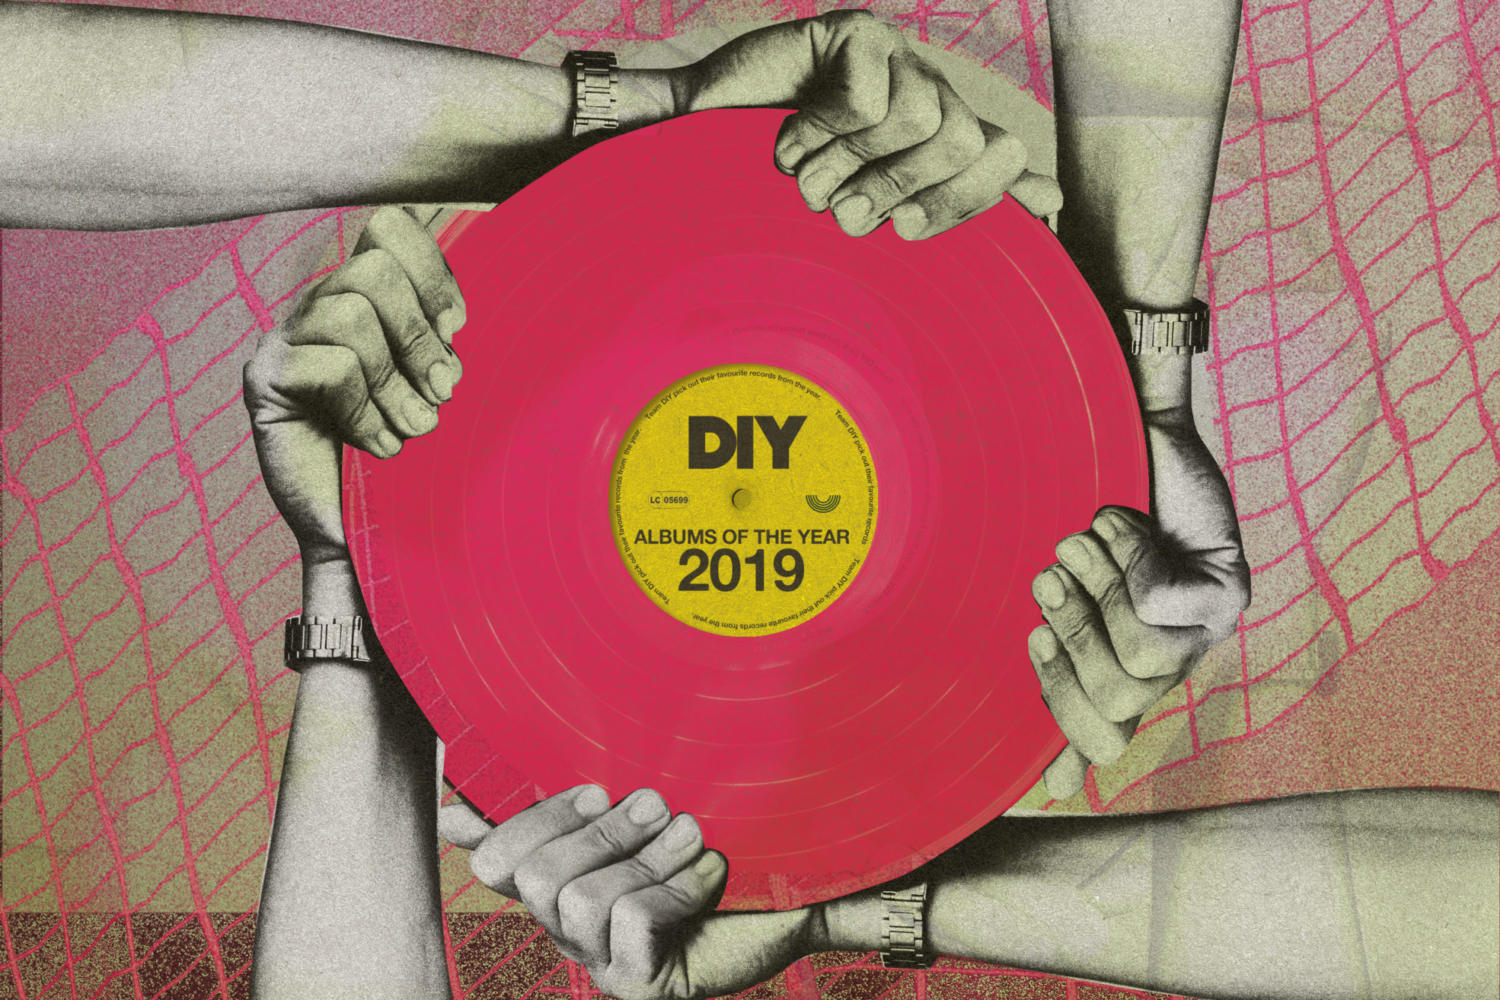 DIY's Albums of the Year 2019